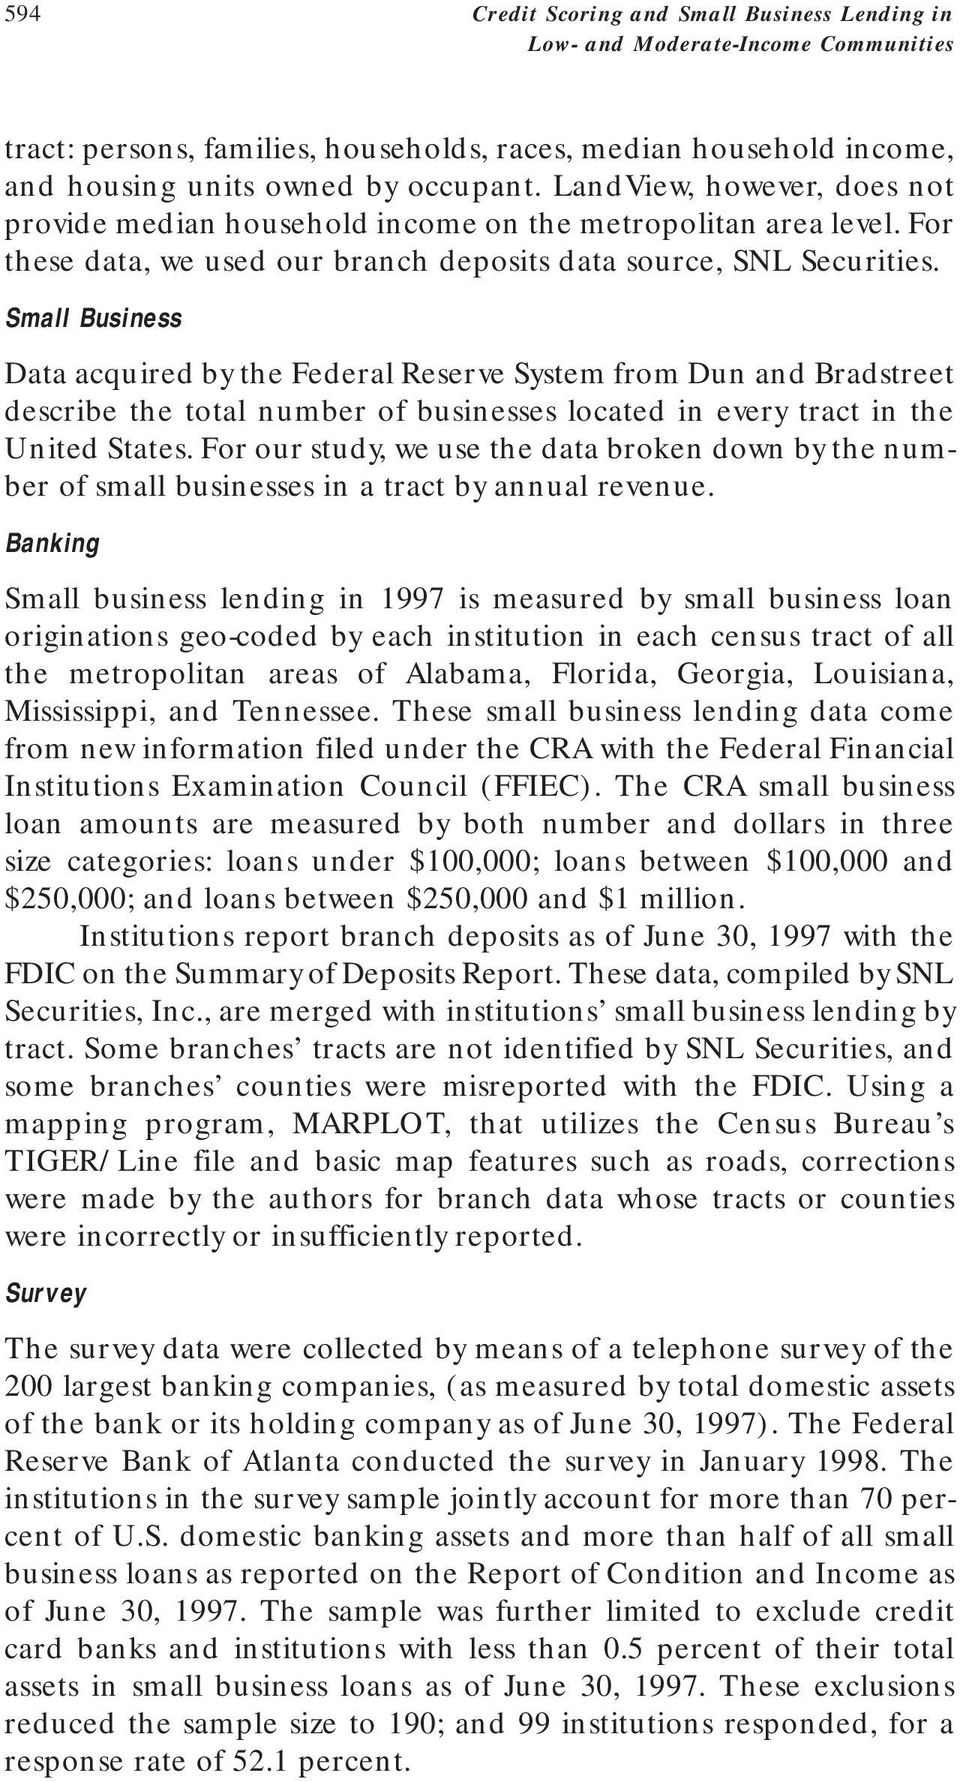 Small Business Data acquired by the Federal Reserve System from Dun and Bradstreet describe the total number of businesses located in every tract in the United States.